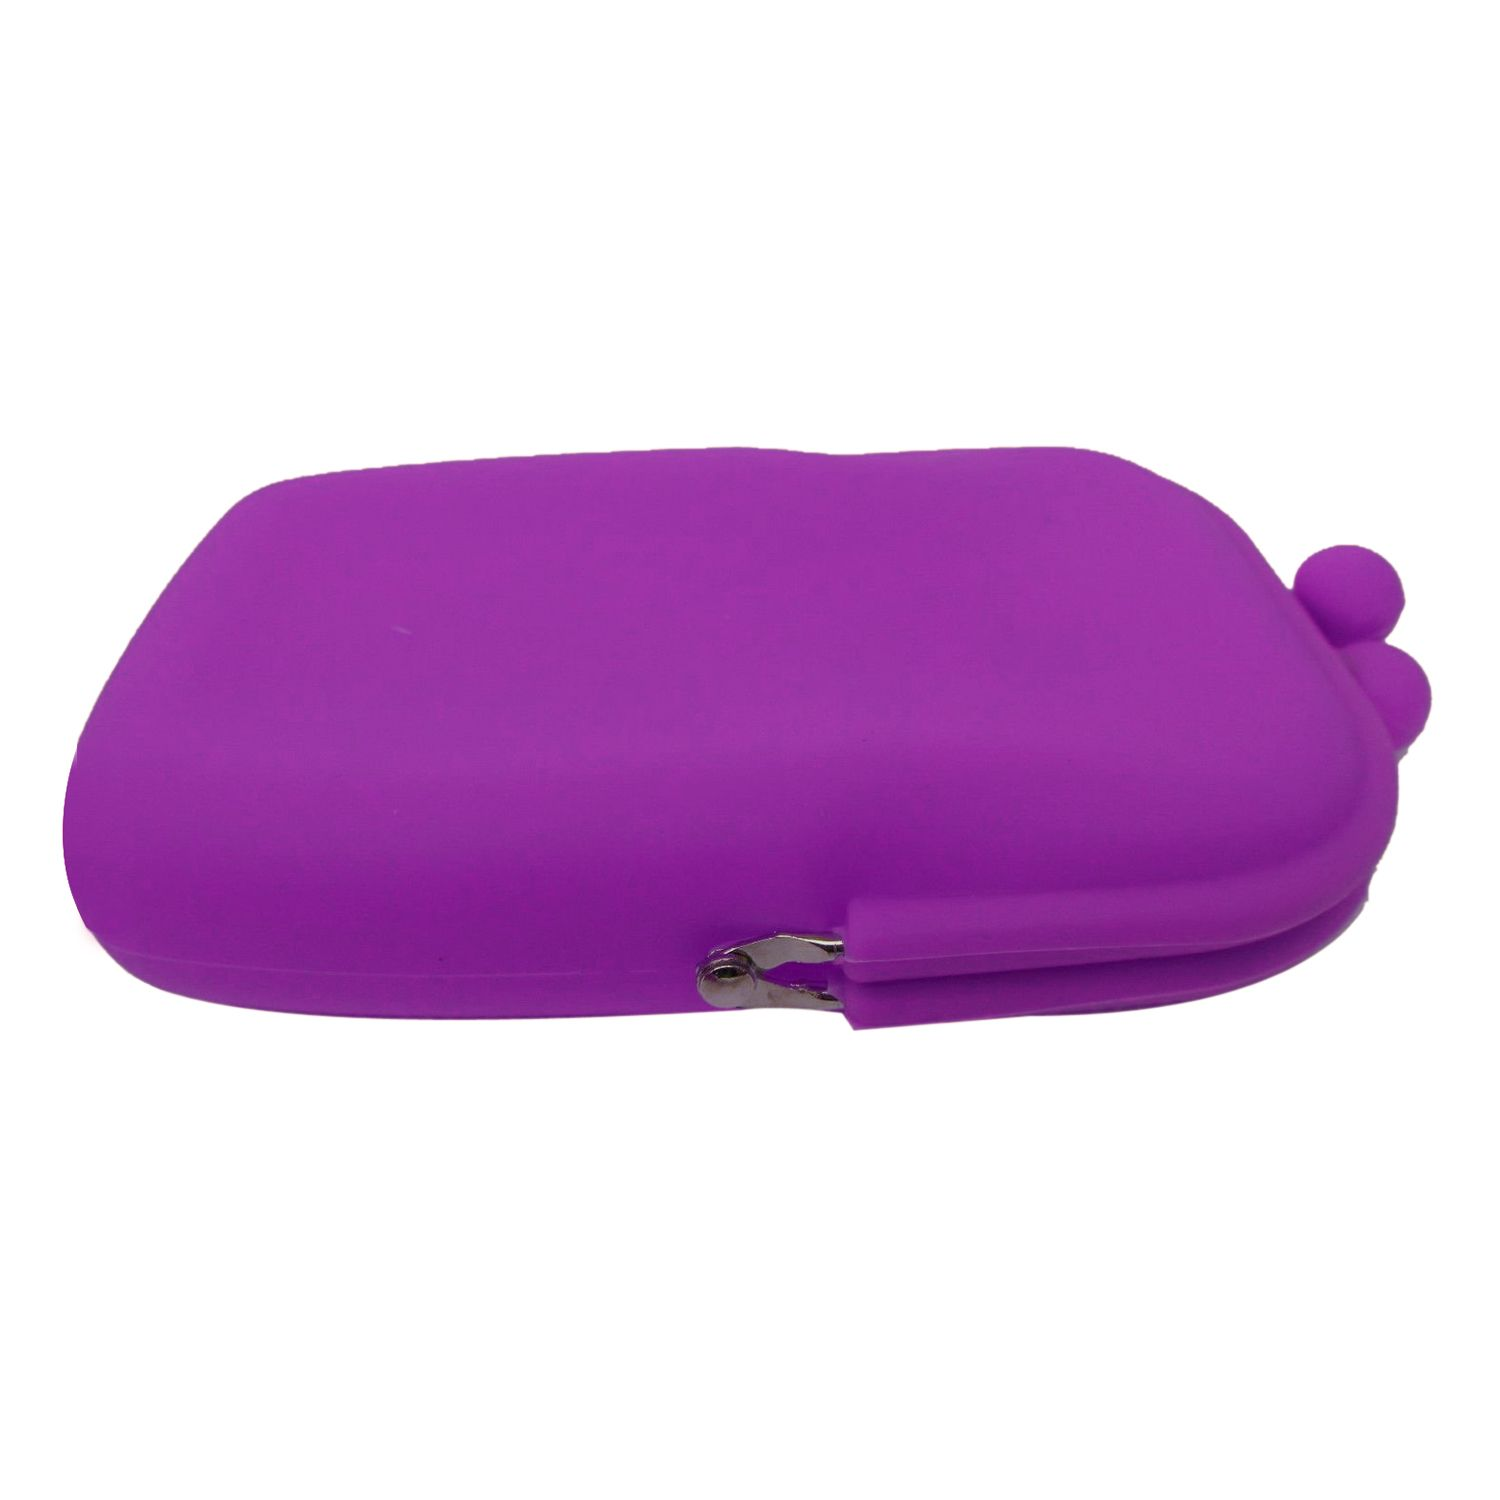 82207c0fd3cd IMC New style Silicone Cosmetic Makeup Bag Coin Purses Wallet Cellphone Bag  purple